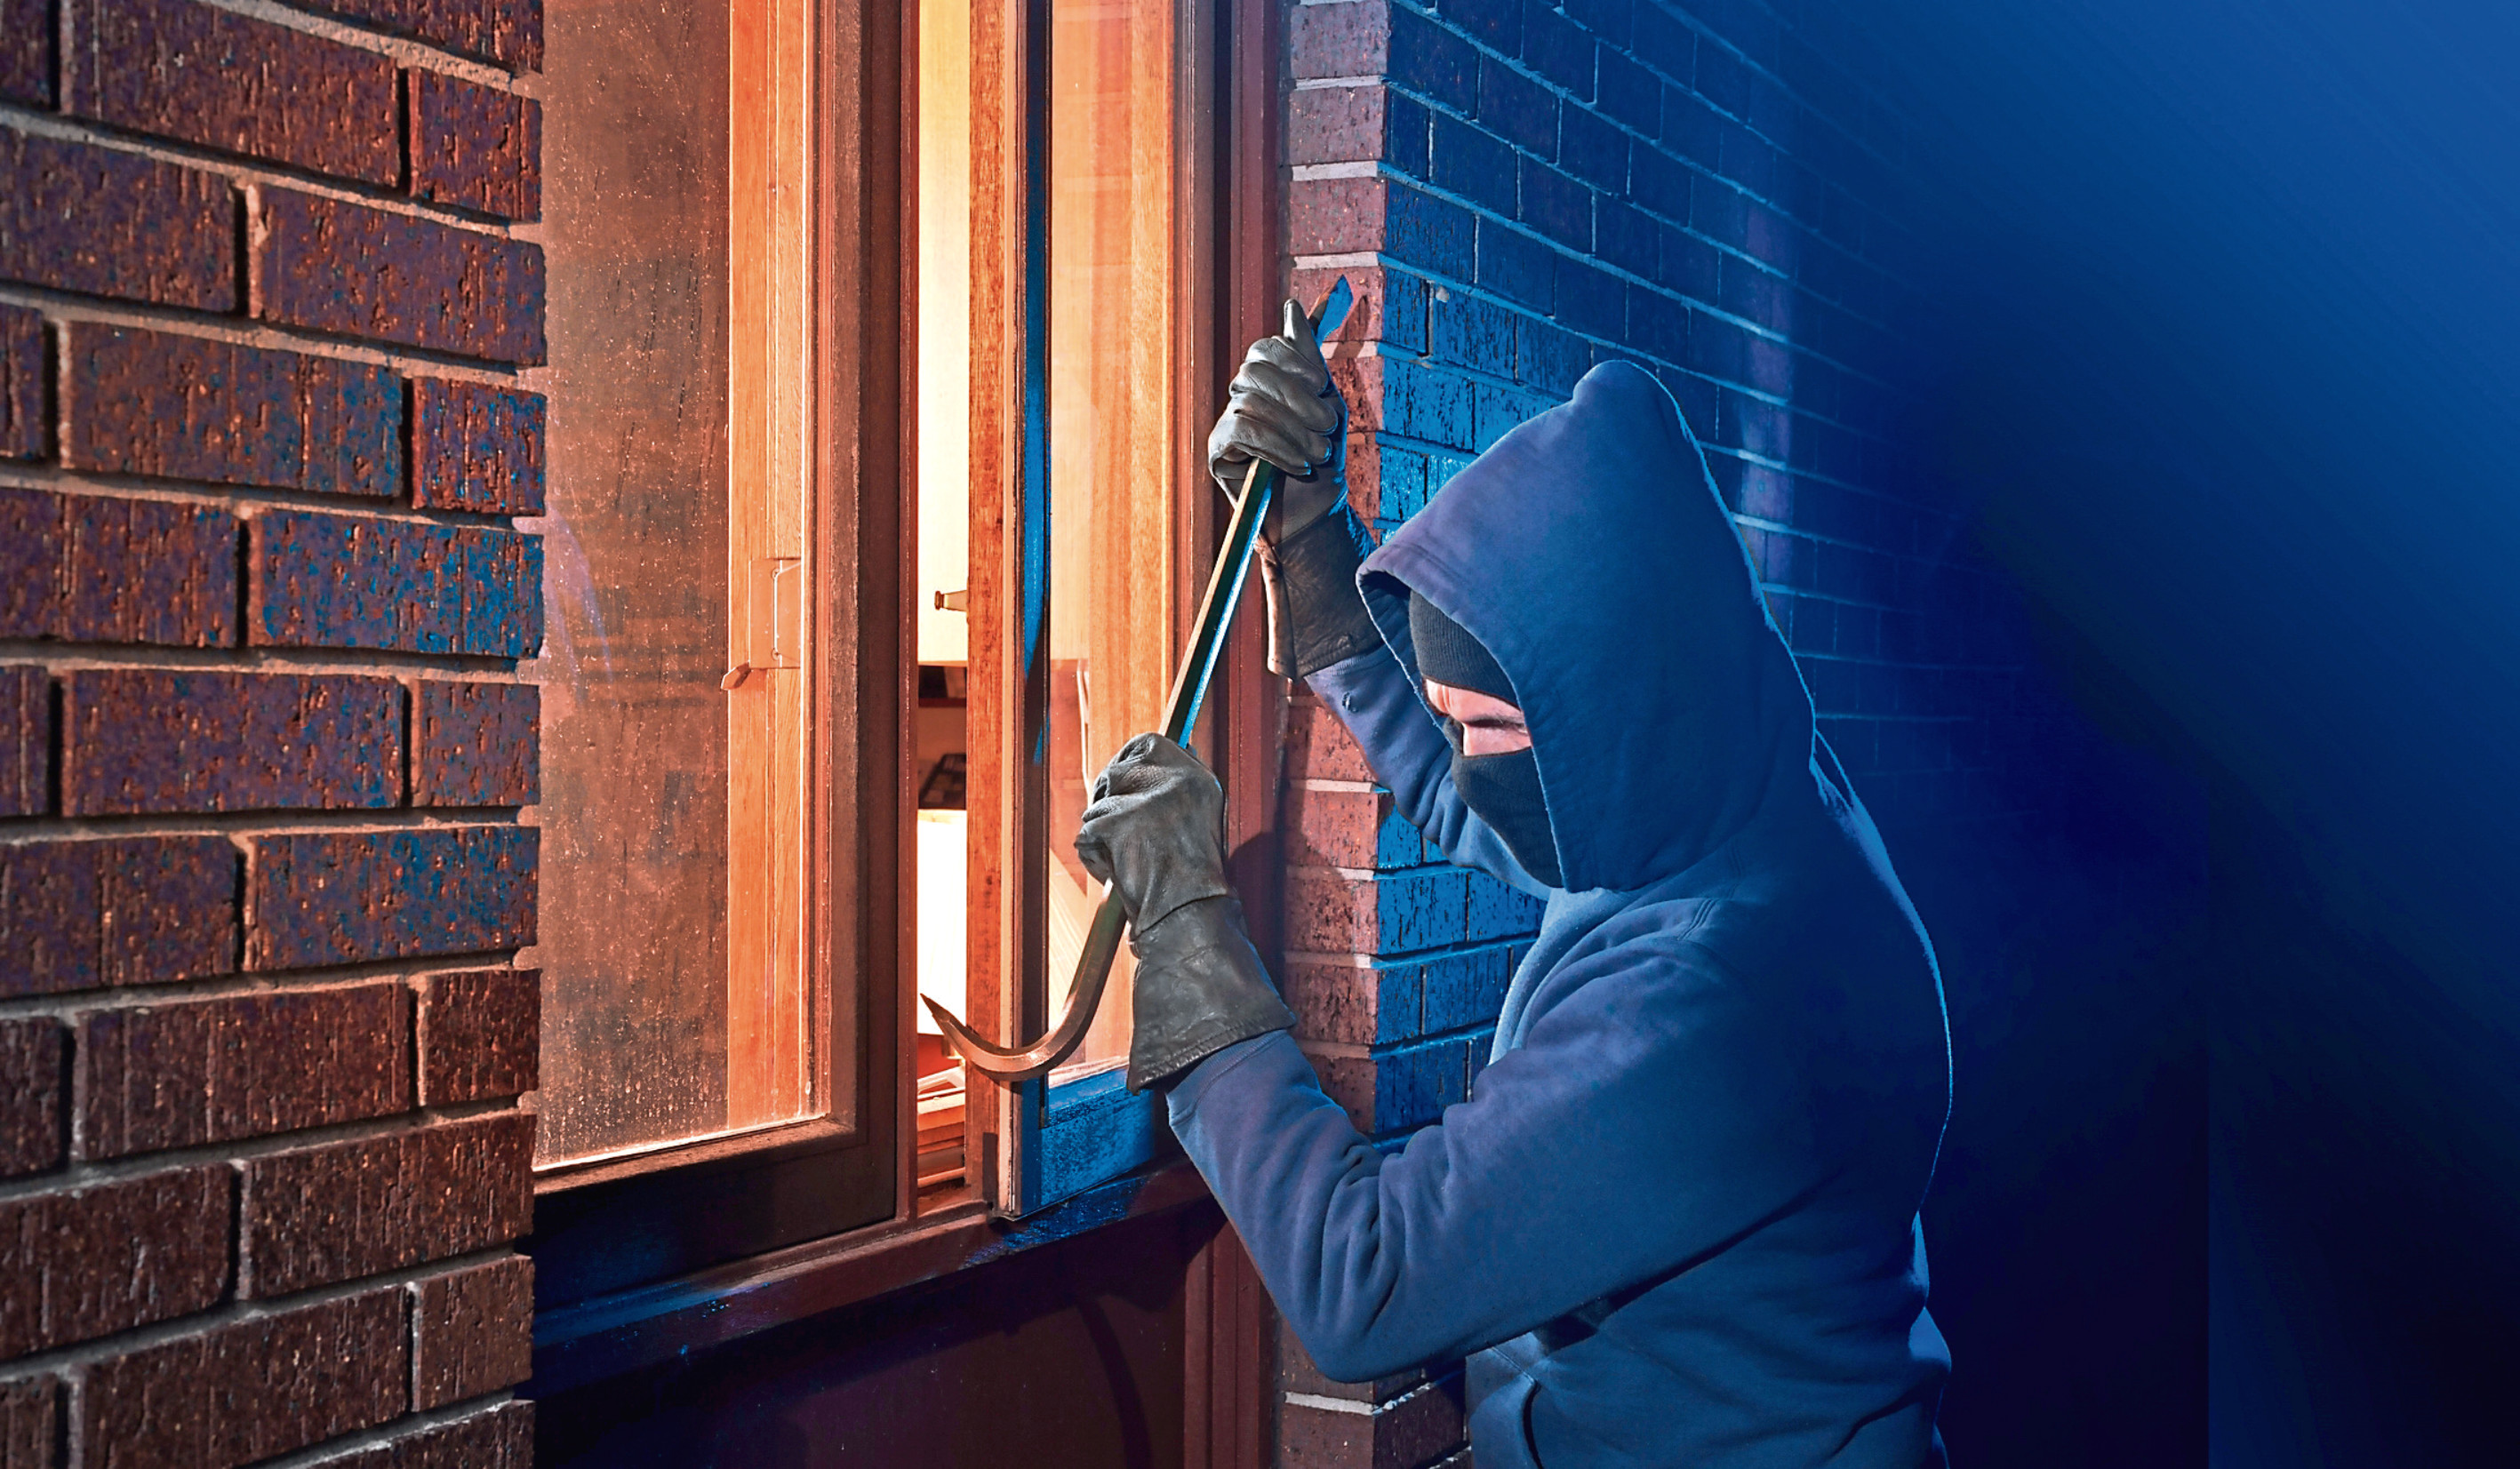 More intruders are being caught after break-ins, according to new police statistics